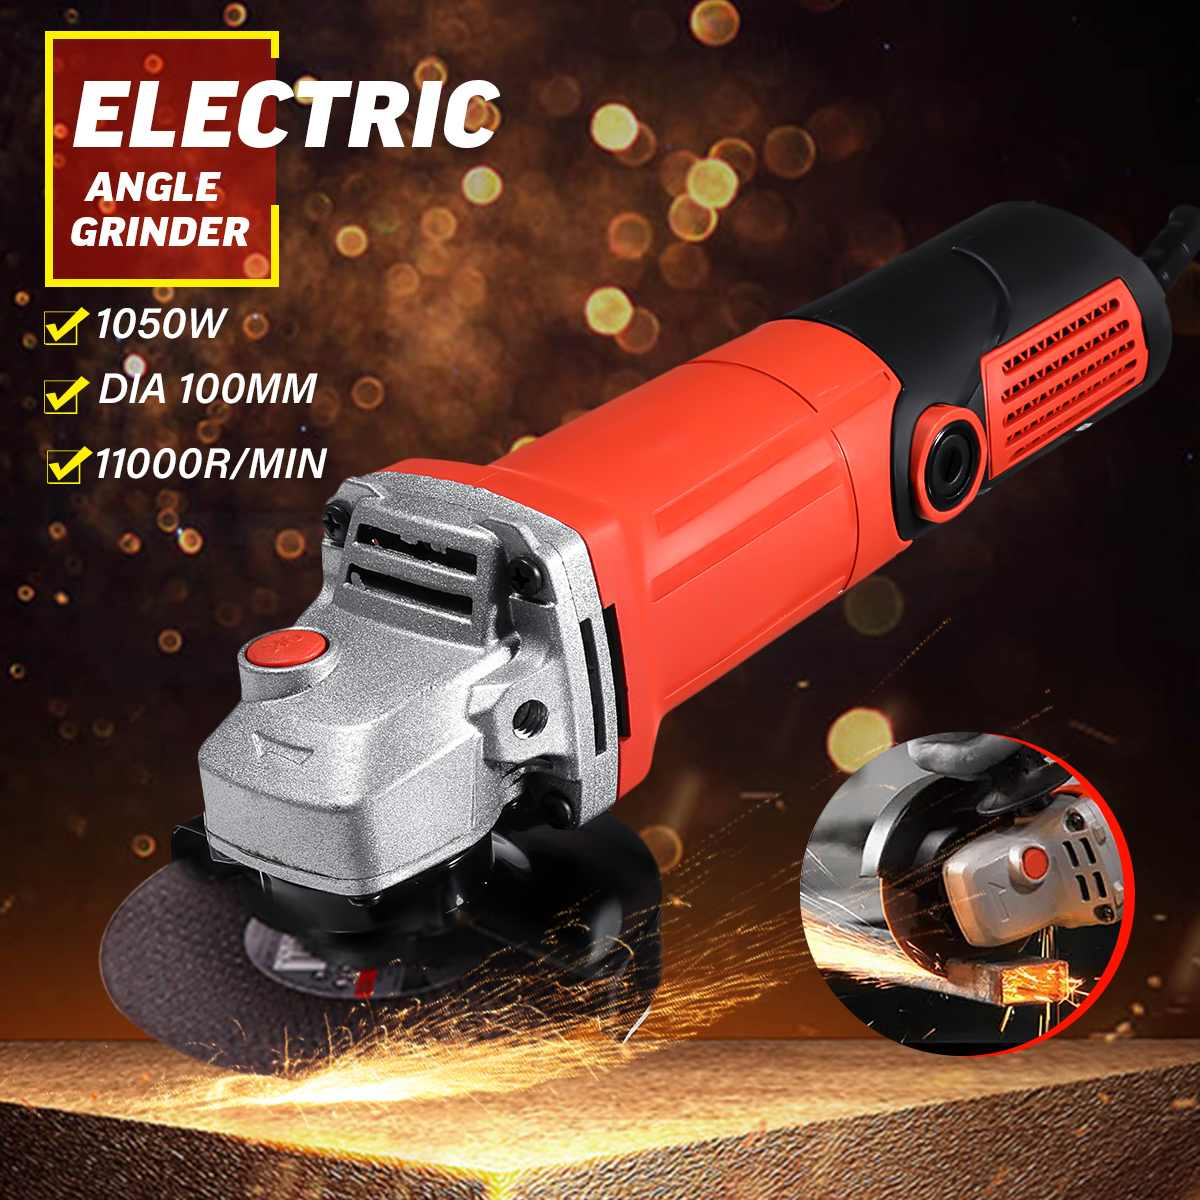 220V 1600W Electric Angle Grinder Anti-Slip Polishing Polisher Grinding Metal Stone Wood Cutting Woodworking Grinder Power Tool